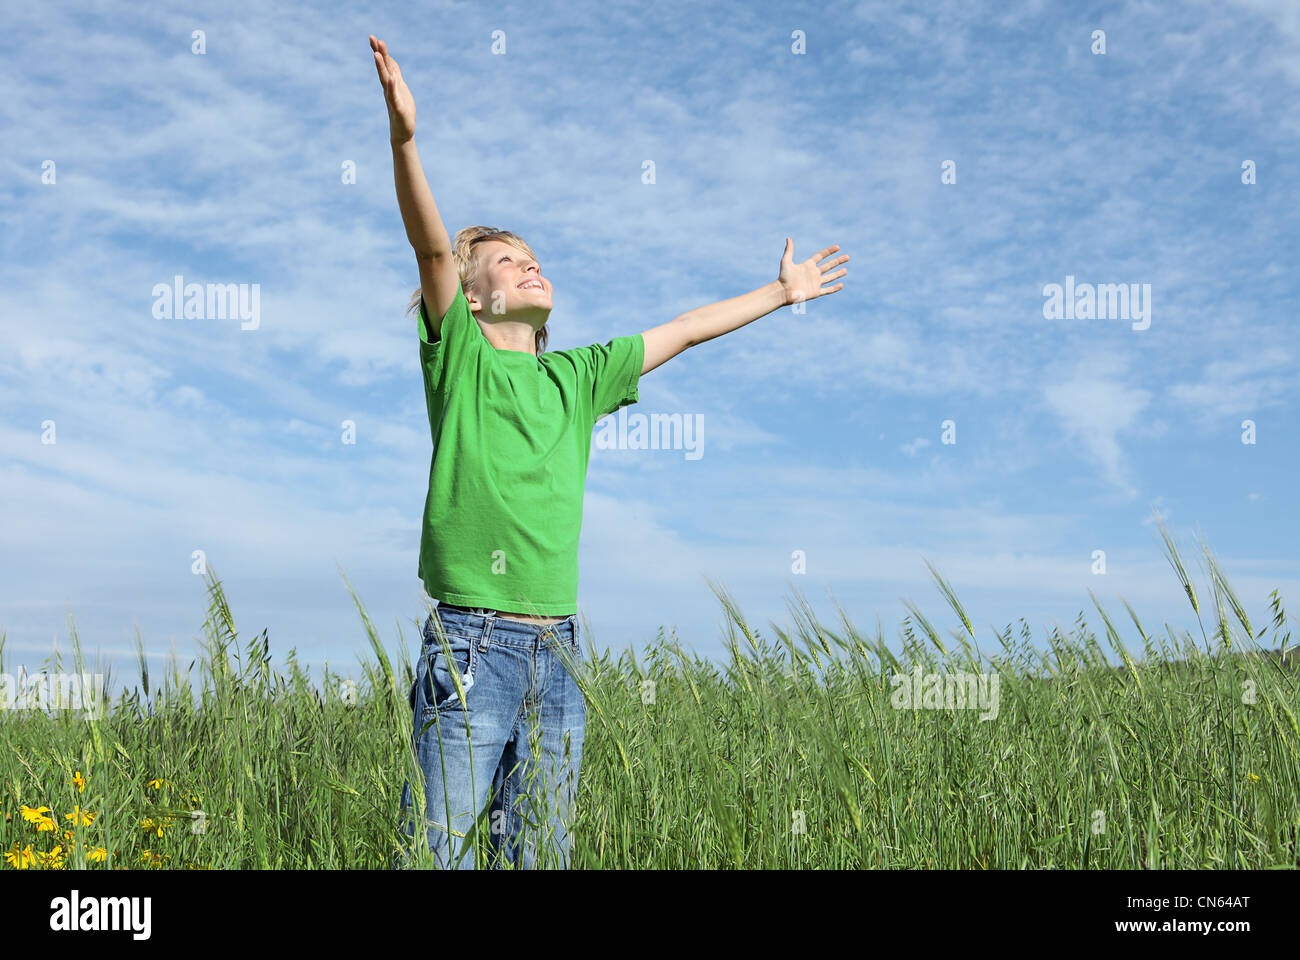 happy child arms raised praising the skies in summer - Stock Image